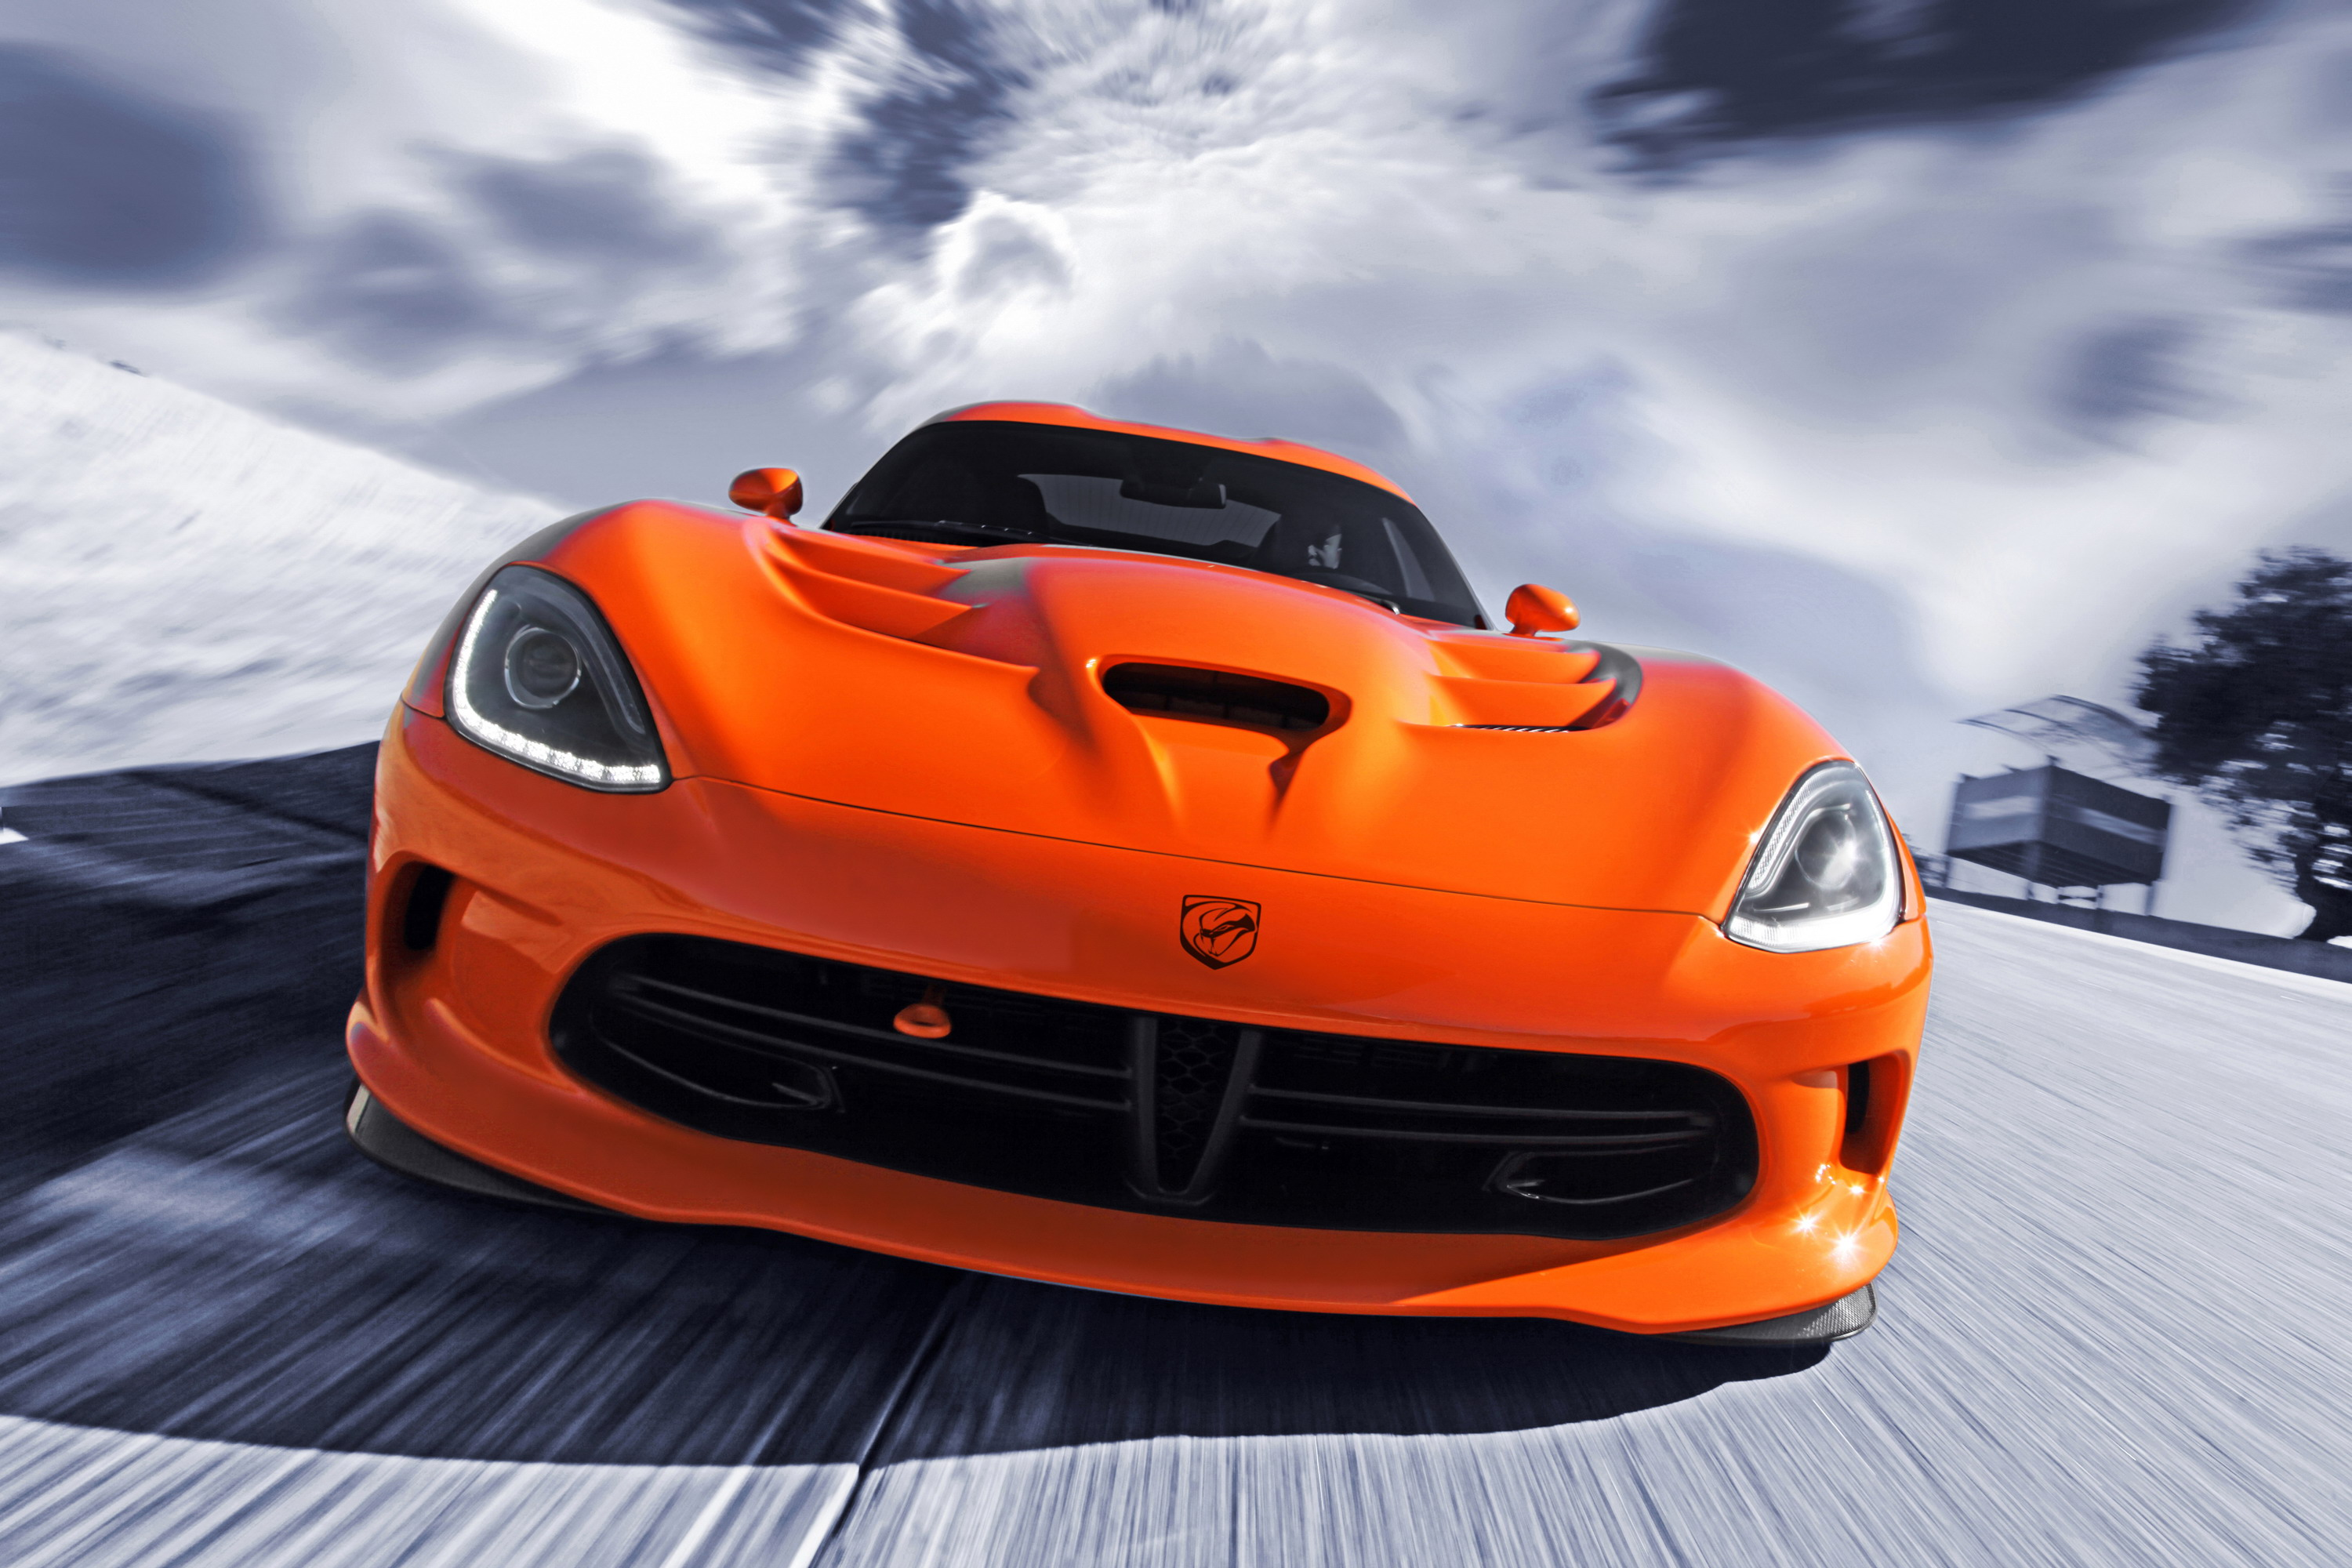 23 All New Dodge Viper Concept 2020 History